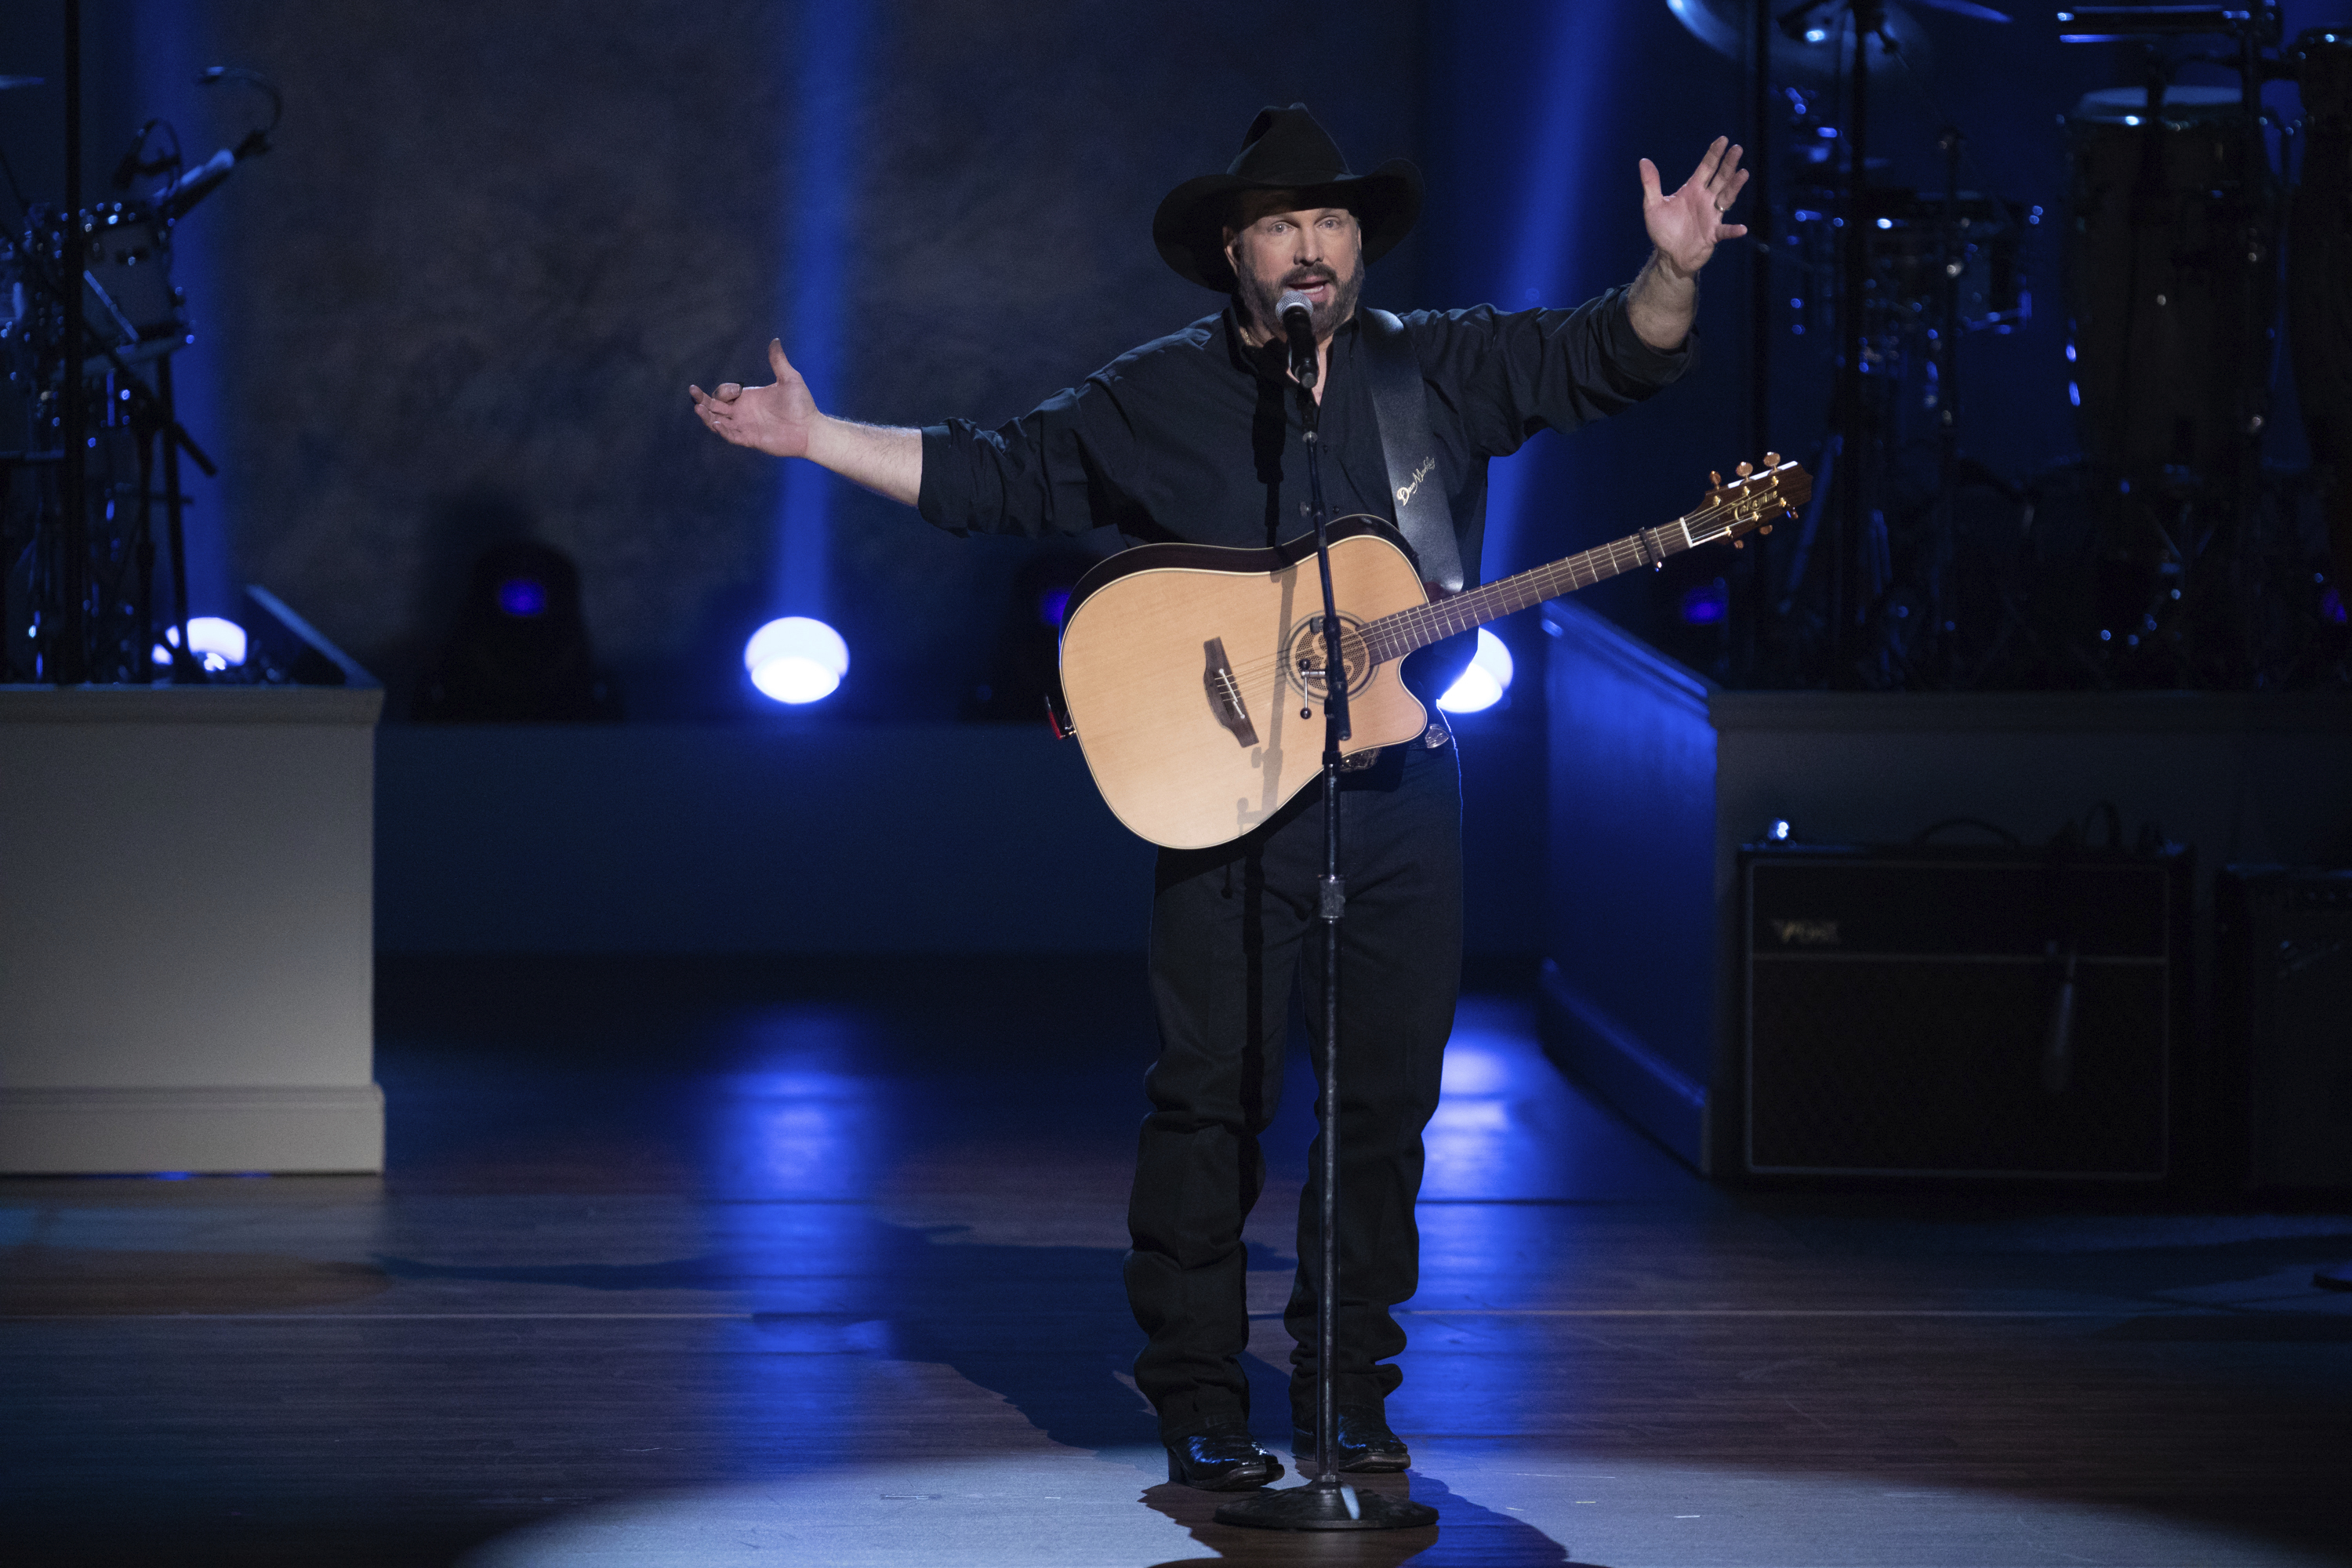 Garth Brooks To Perform At Joe Biden and Kamala Harris' Swearing-In Ceremony